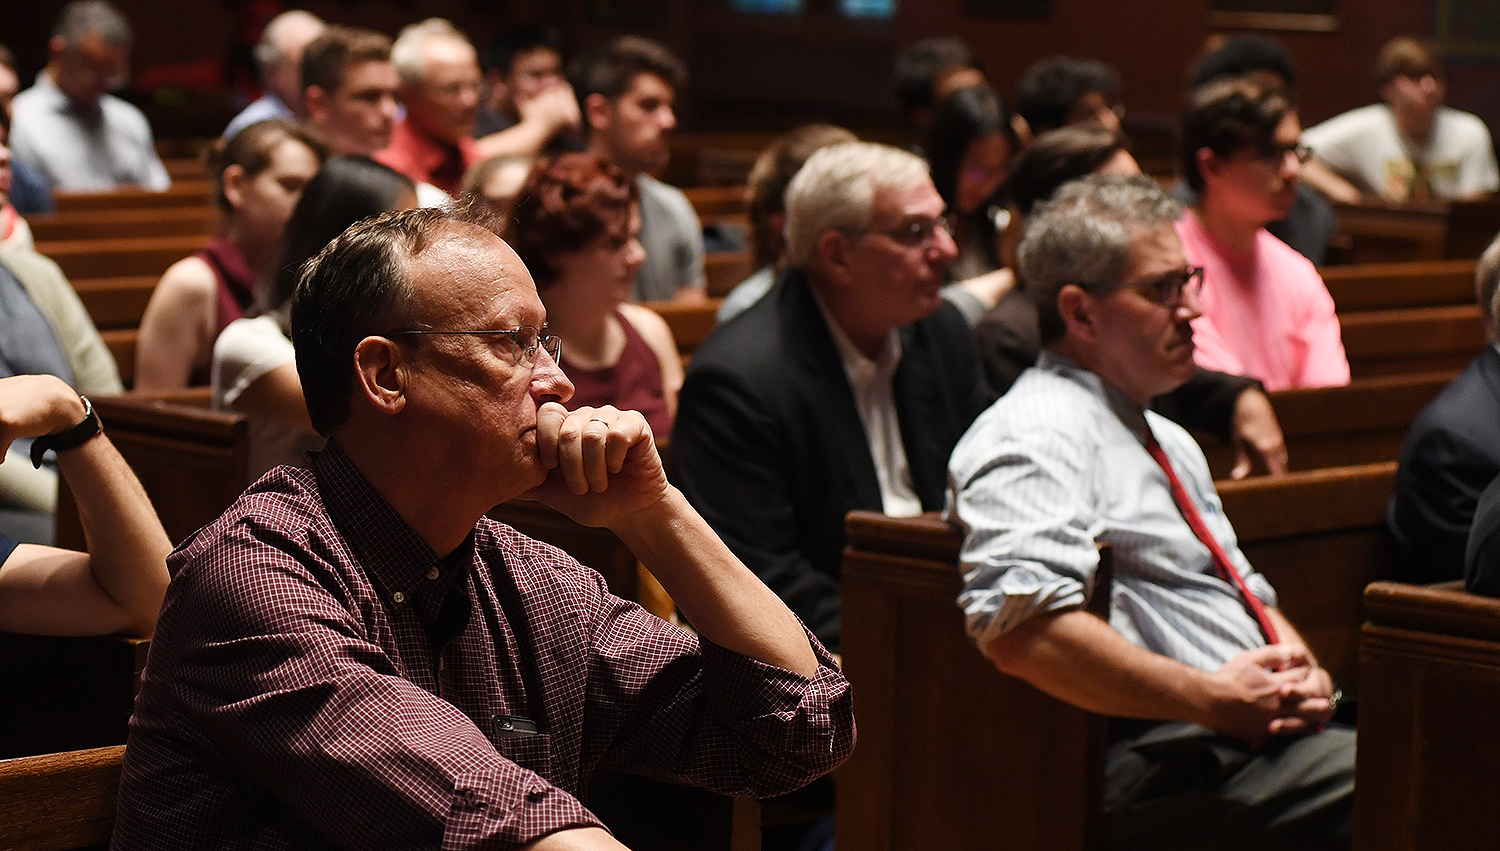 Wesleyan faculty, staff, students and members of the broader community attended the lecture.